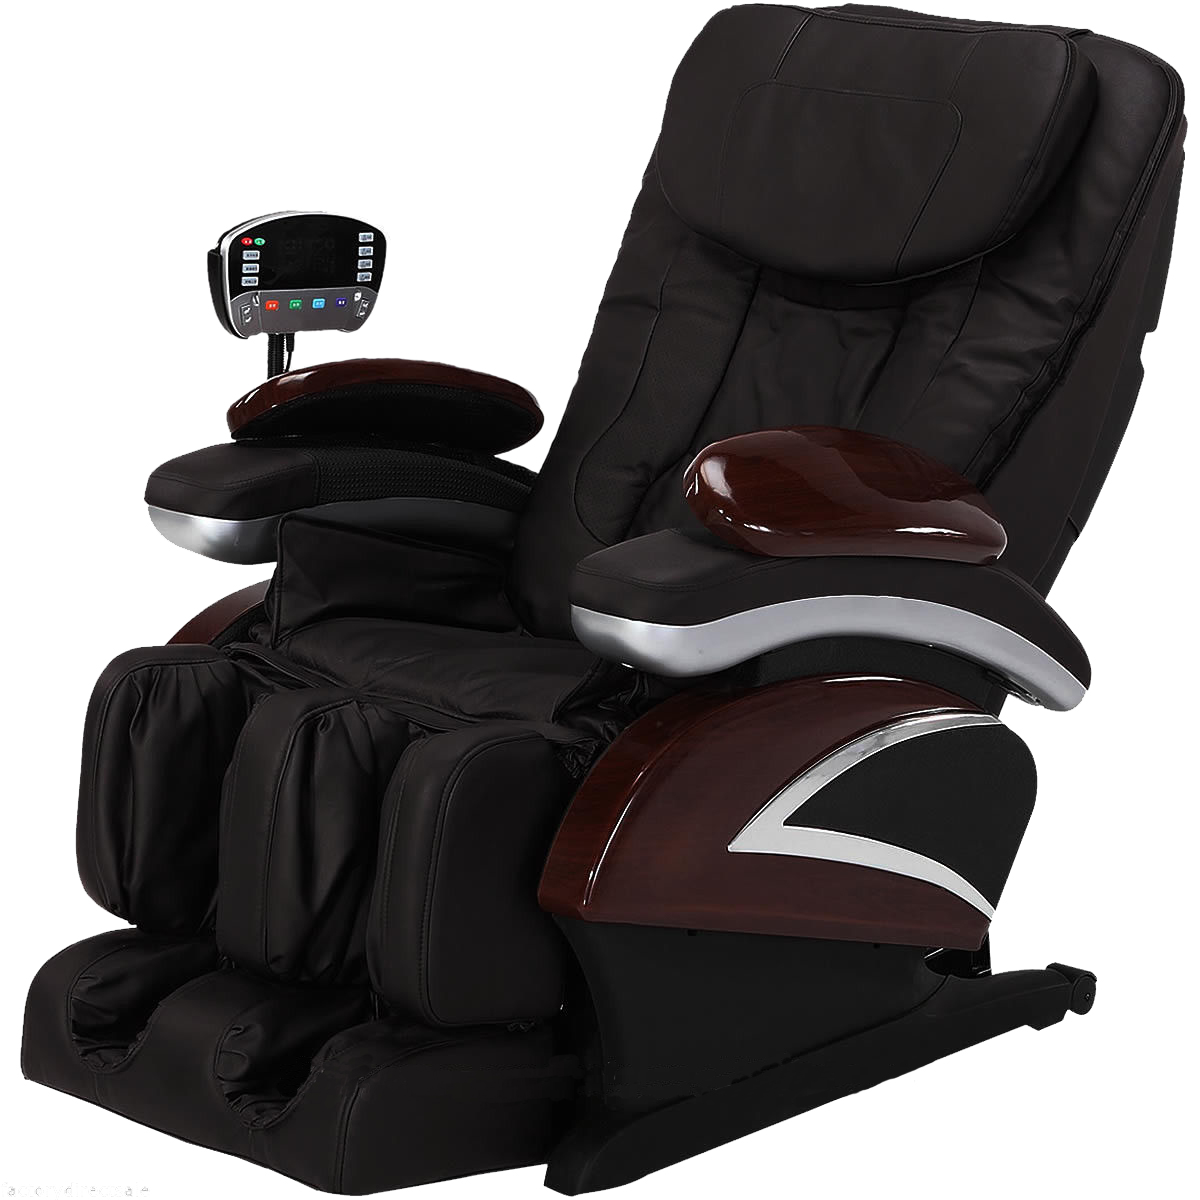 RK2106G_MASSAGE_CHAIR web.jpg